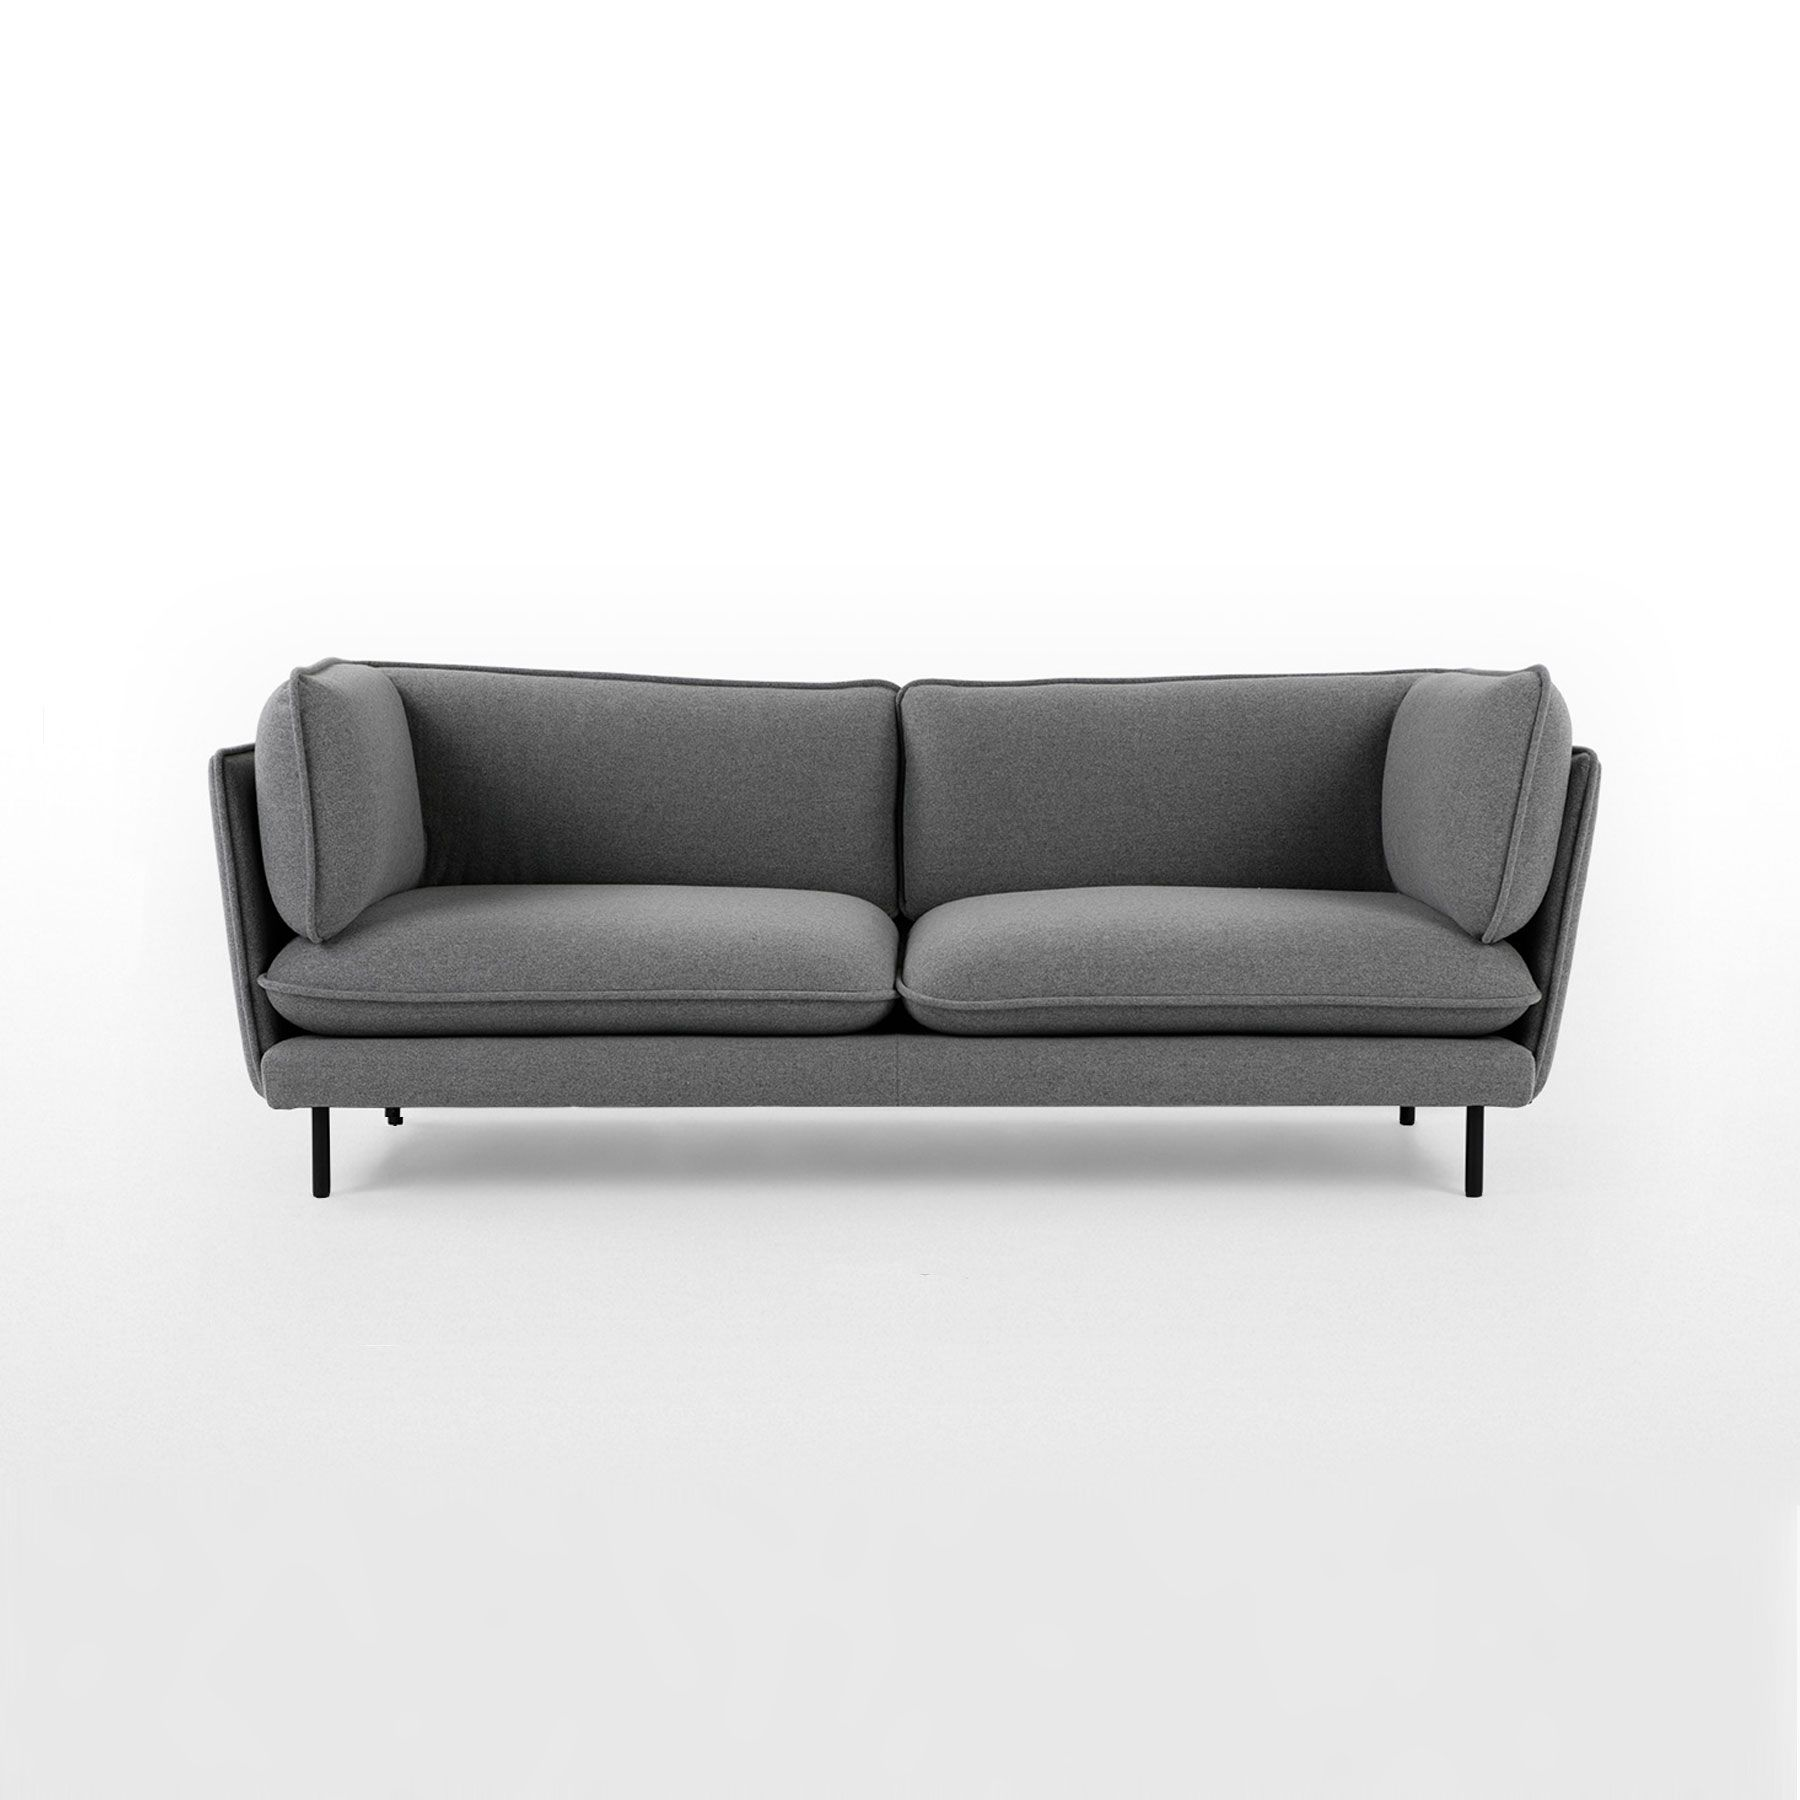 Moebel.de Schlafsofas Pin By Ladendirekt On Sofas Couches Sofa Furniture Sofa Couch